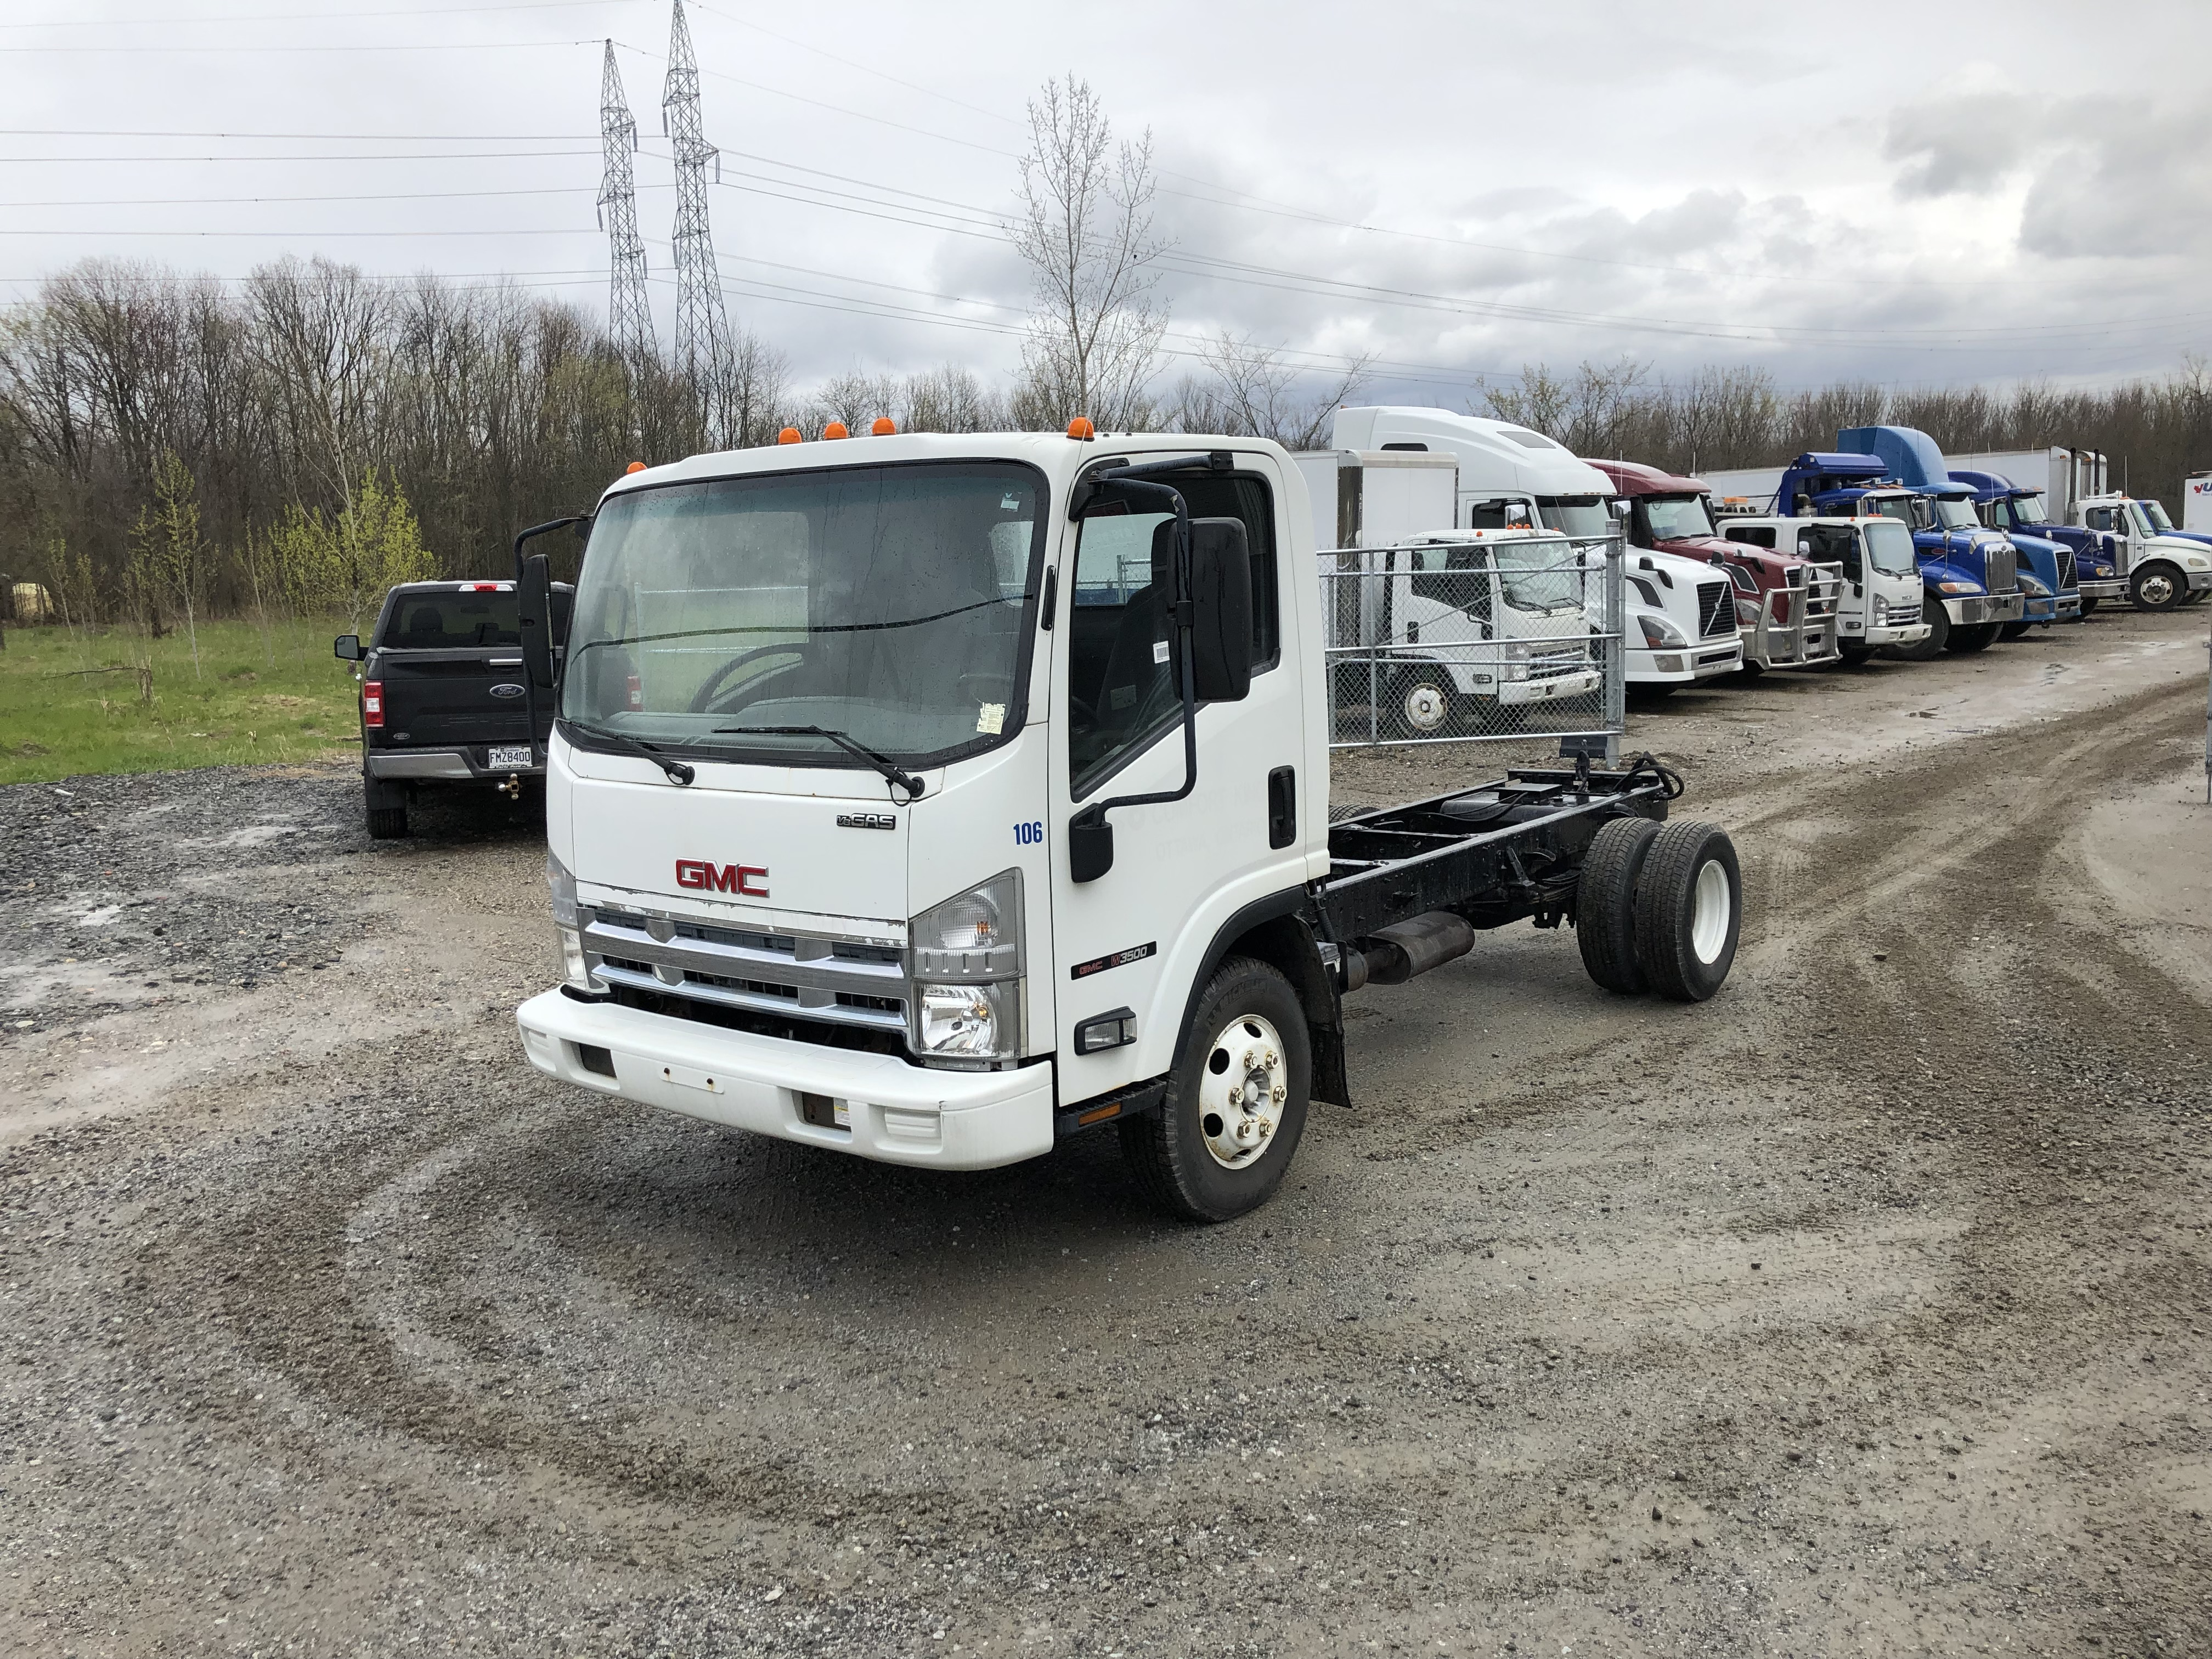 2008 GMC W3500 Cab & Chassis